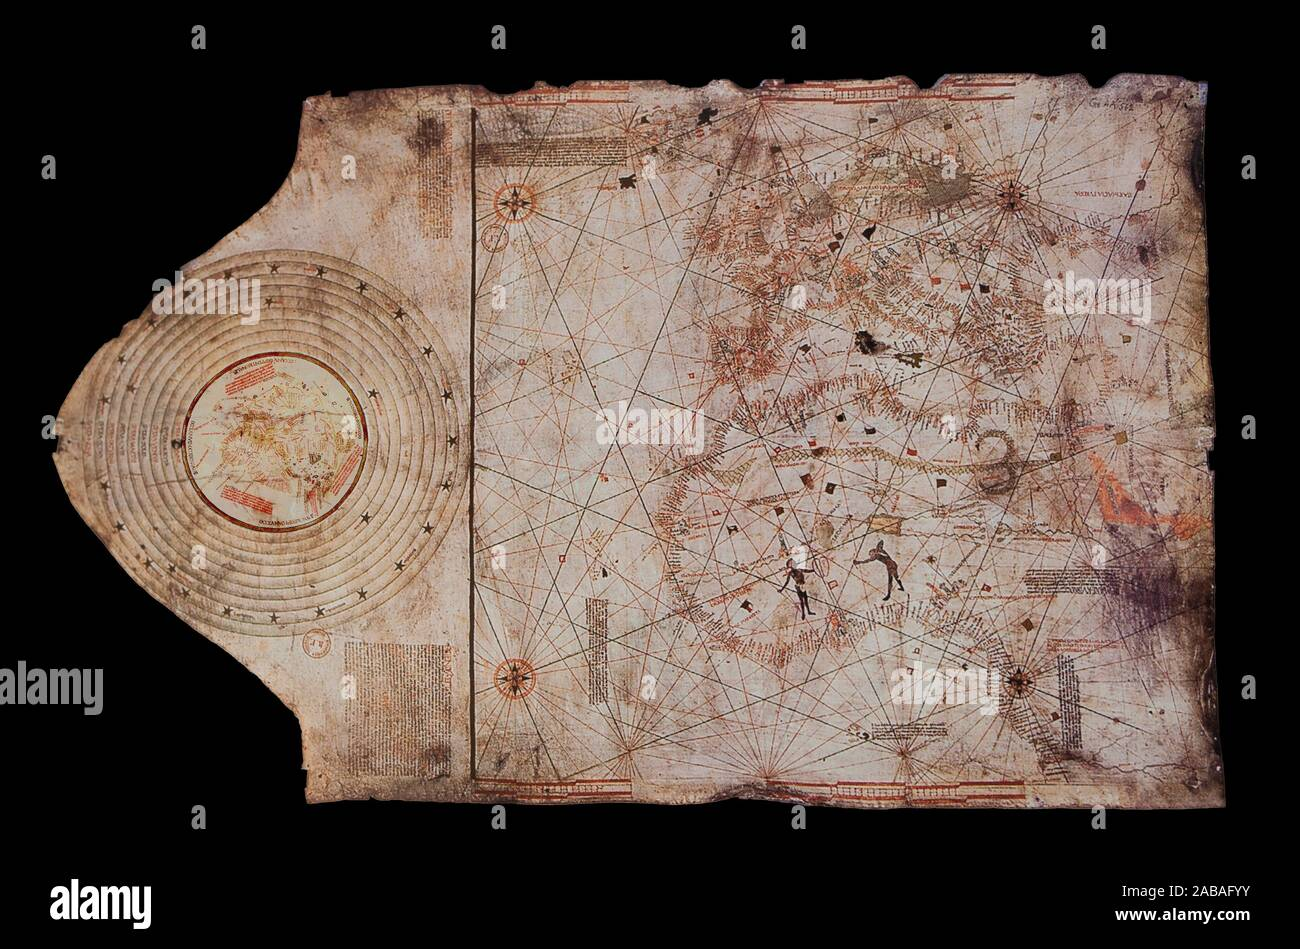 1492 Chart attributed to Christopher Columbus. Naval Museum of Madrid. Stock Photo